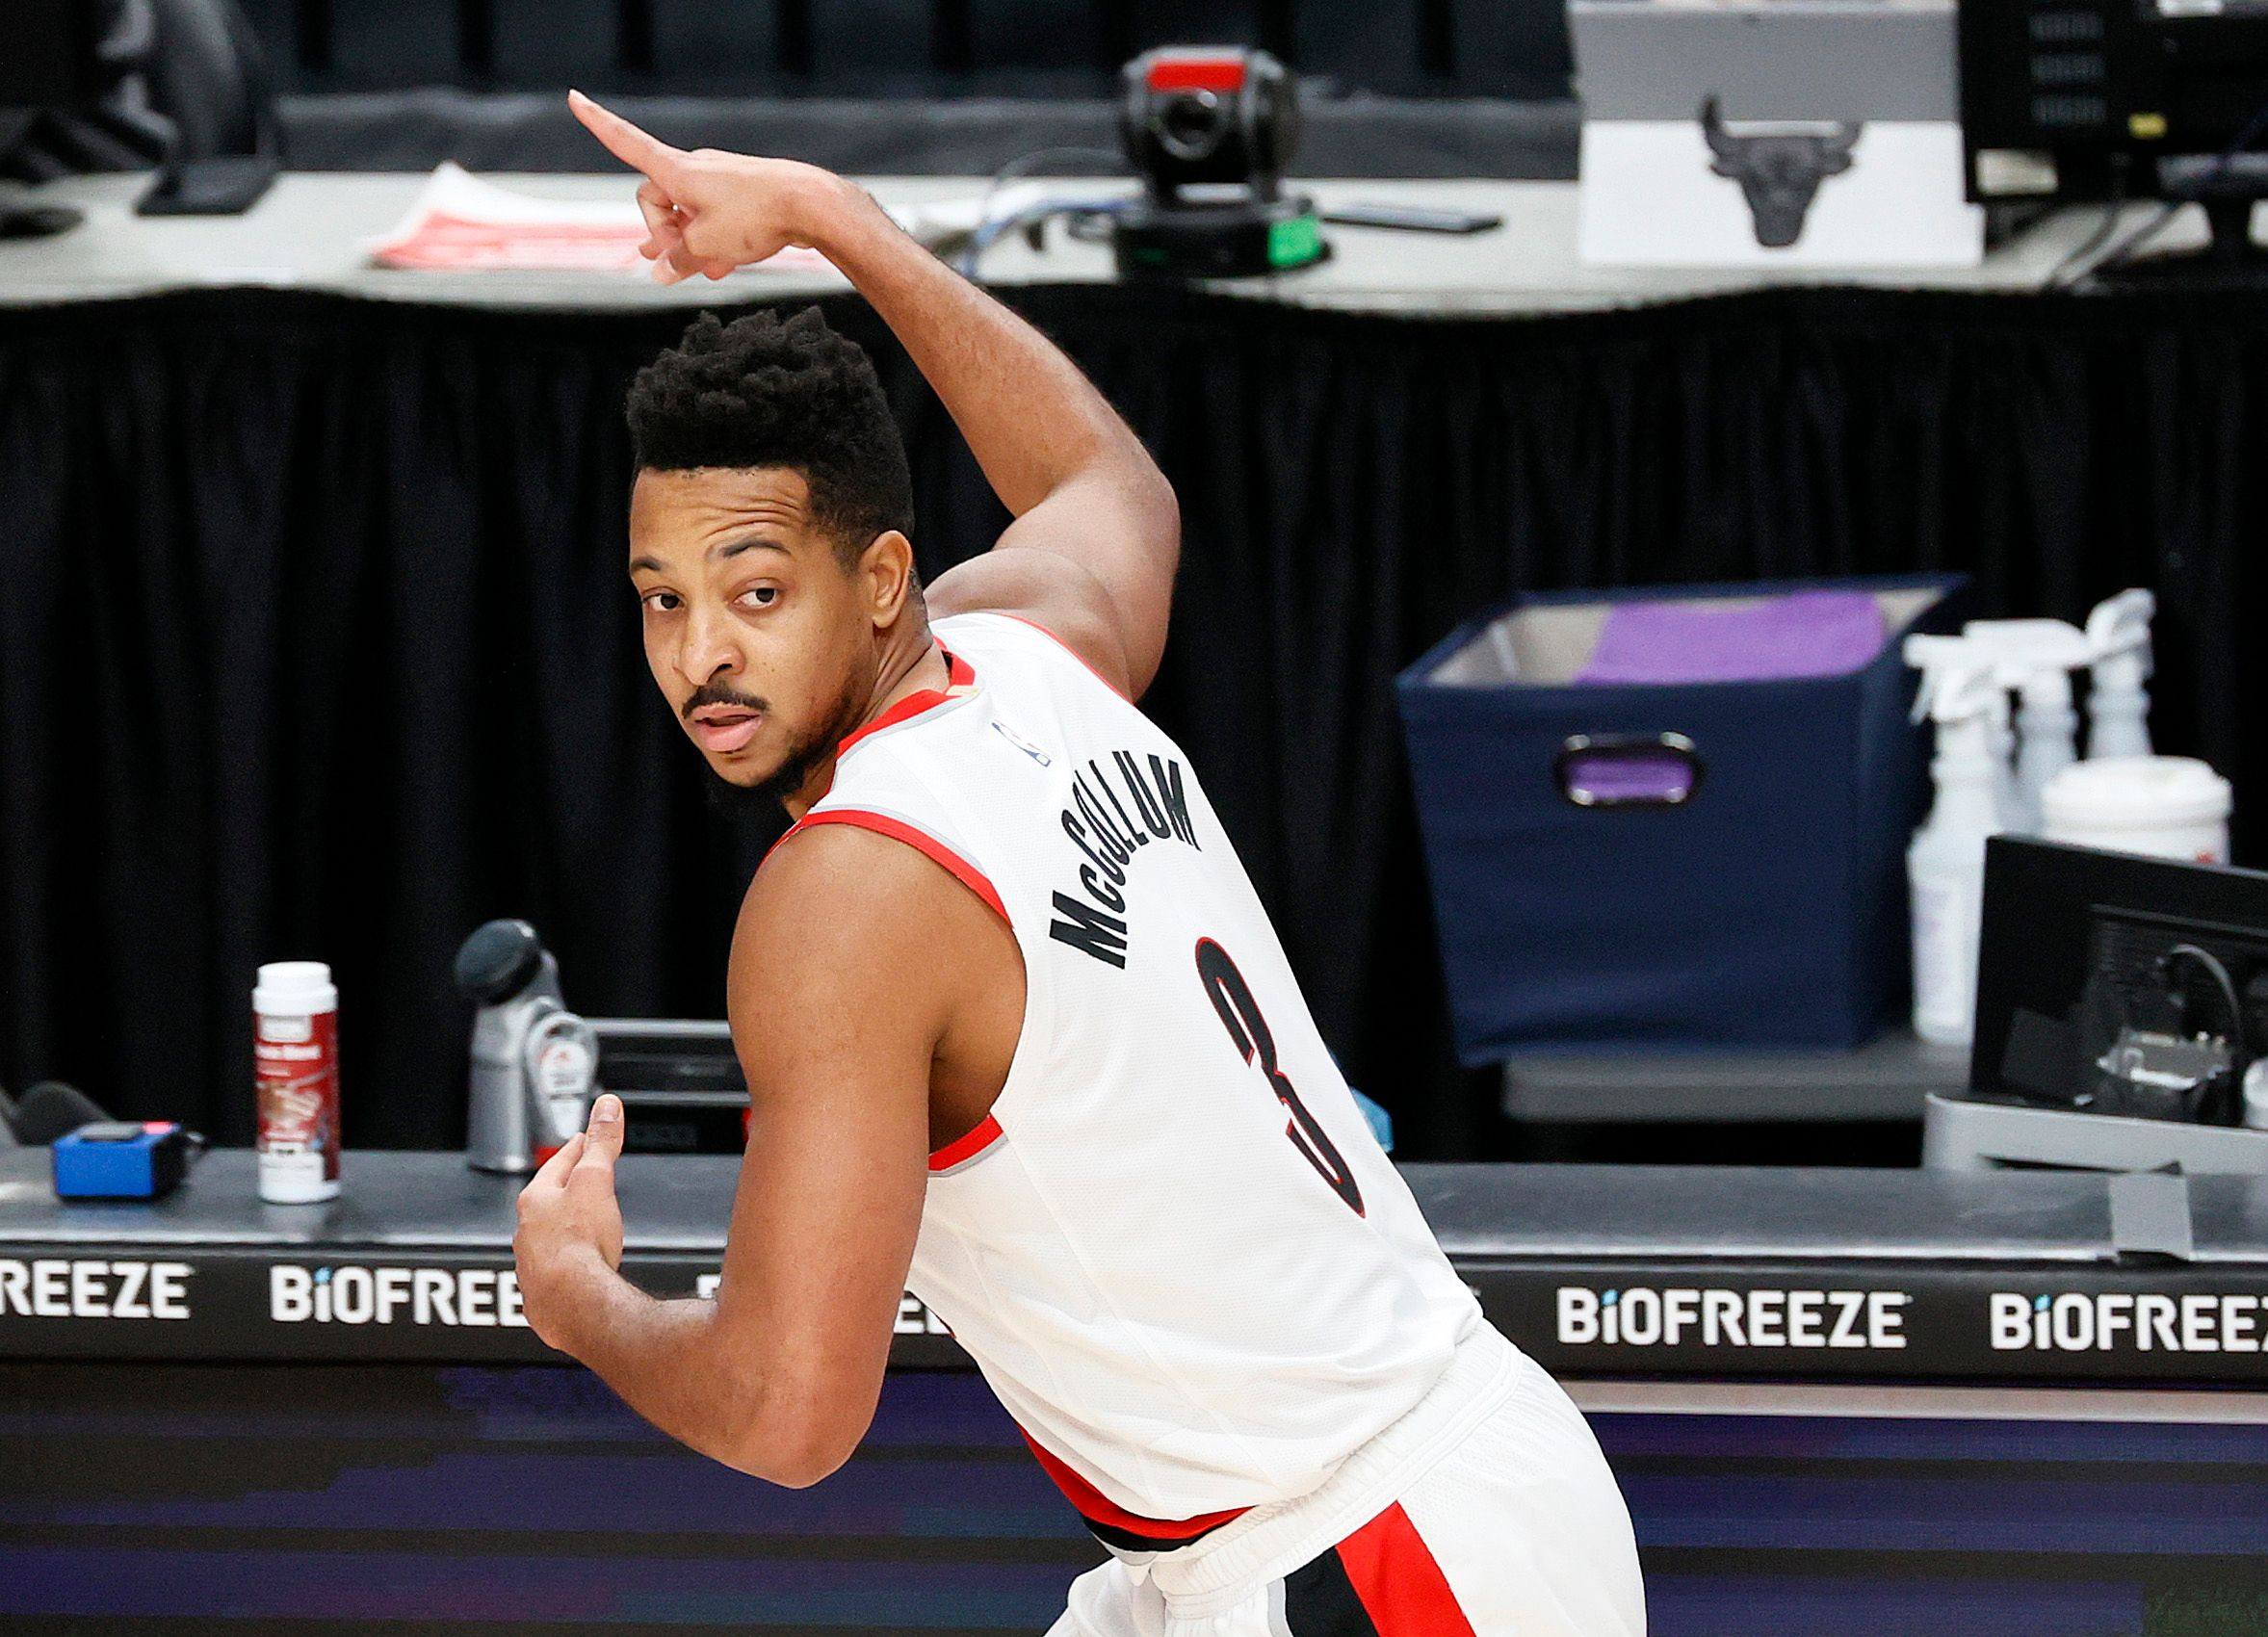 CJ McCollum going back to defense after scoring